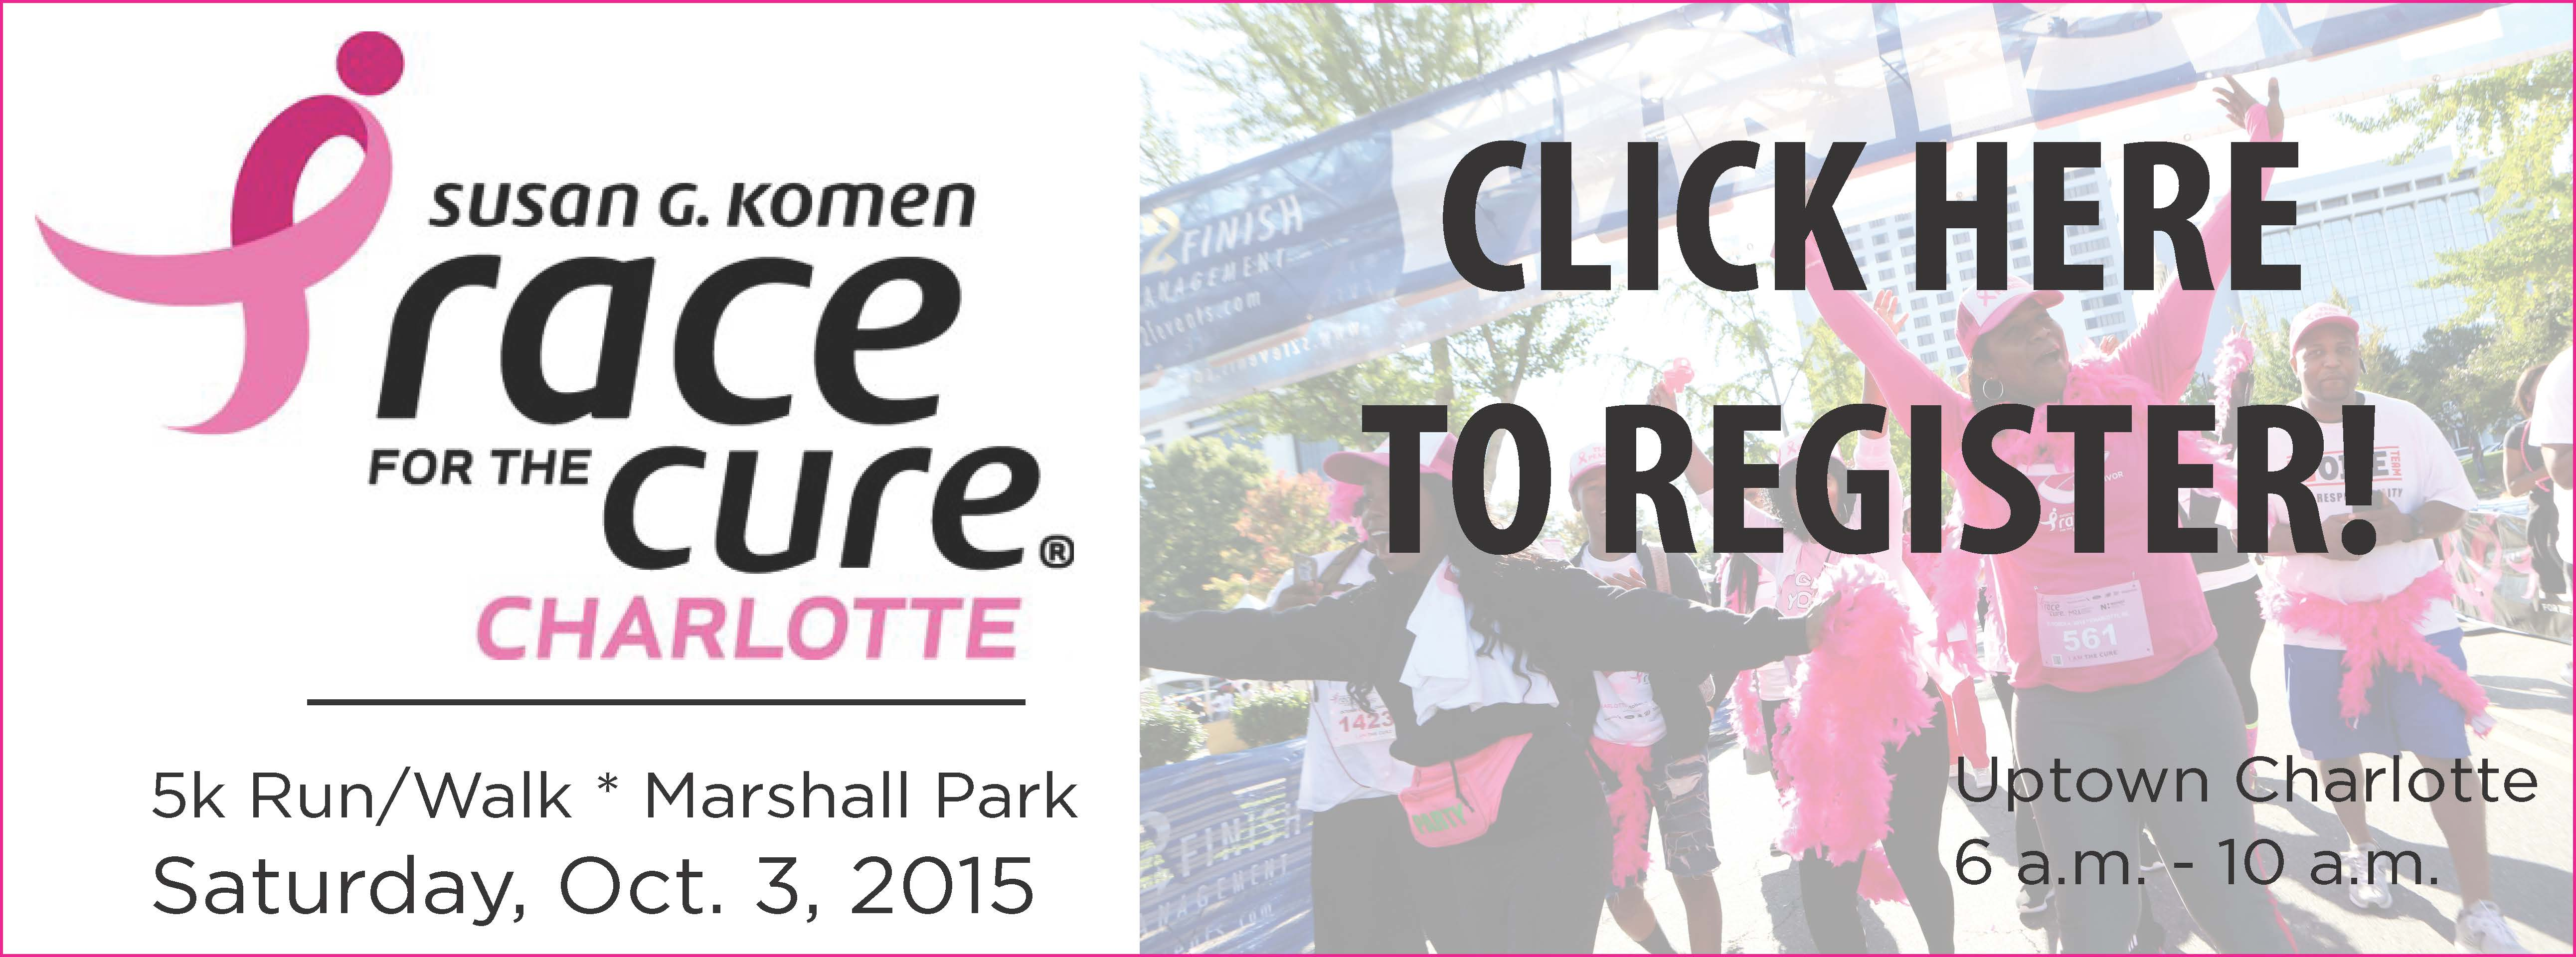 Race-for-the-Cure-web-banner-click-HERE